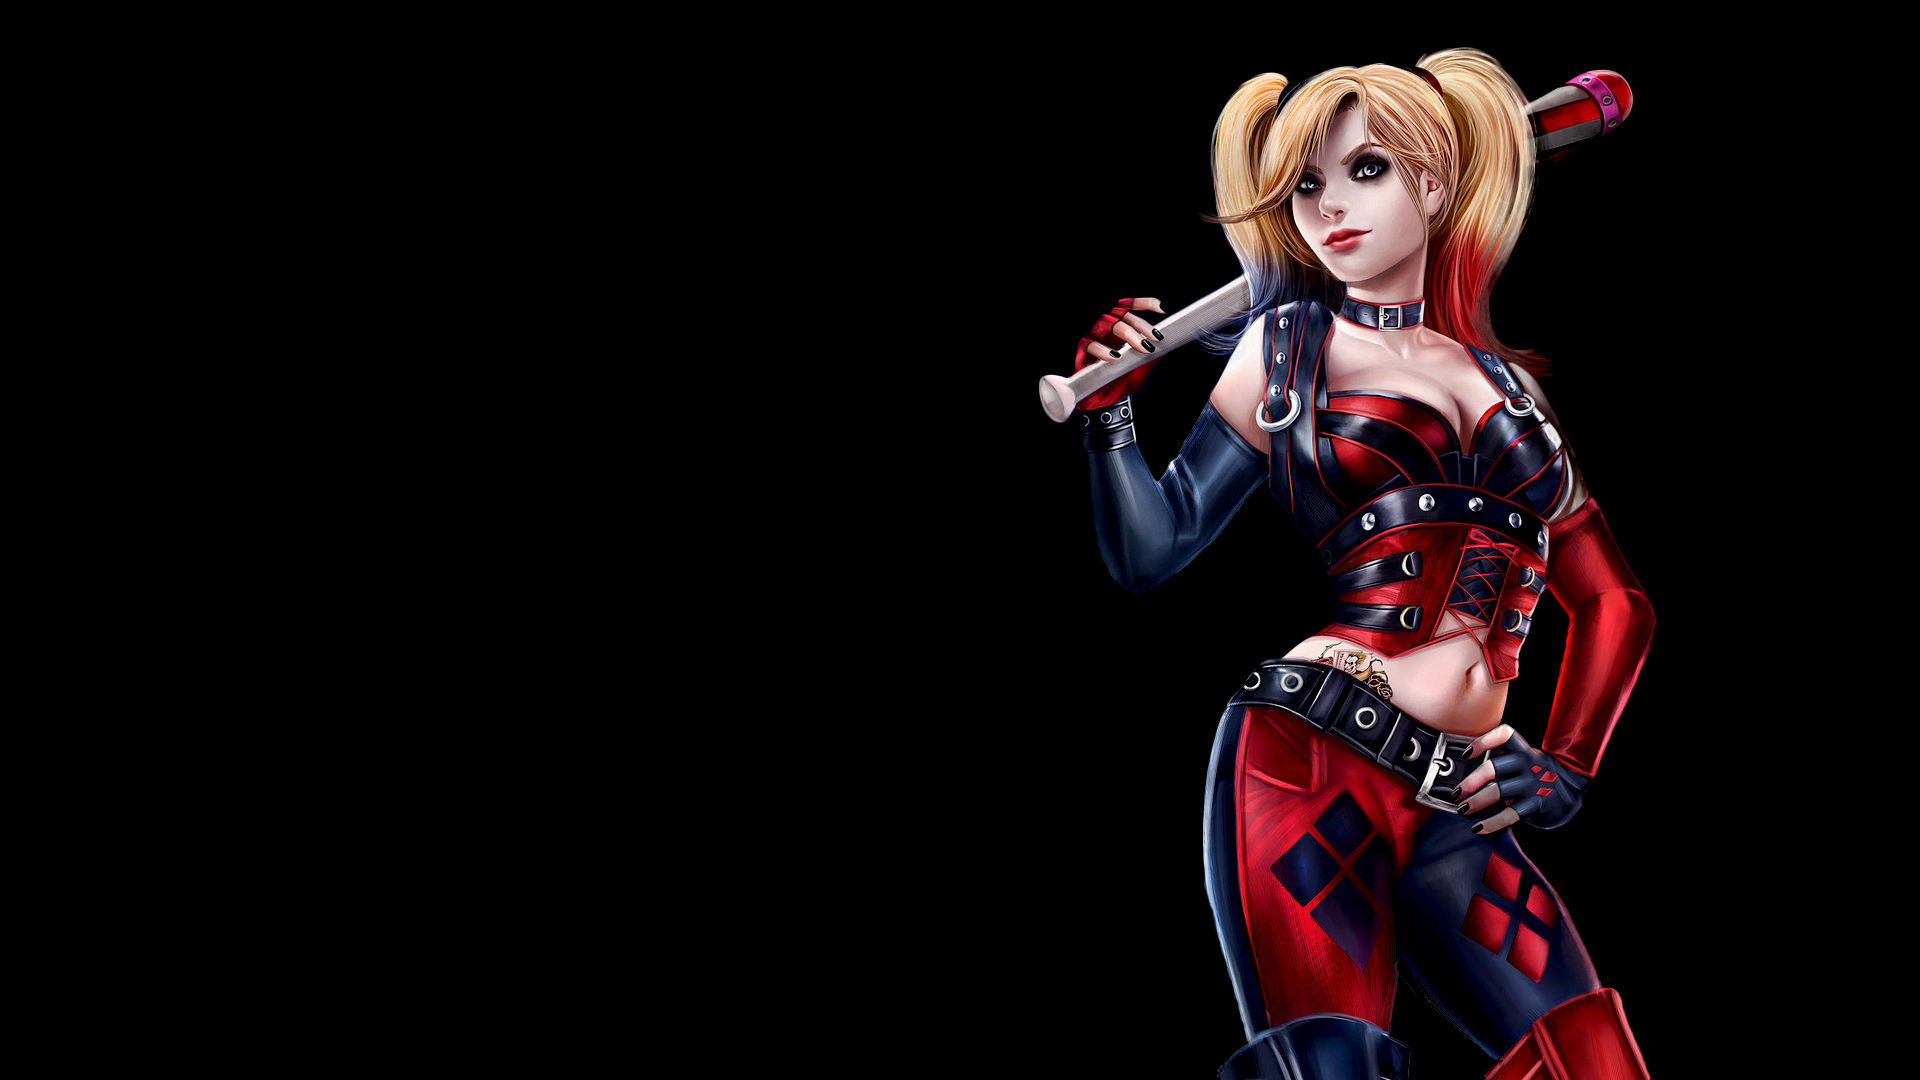 Collection of Harley Quinn Background on HDWallpapers